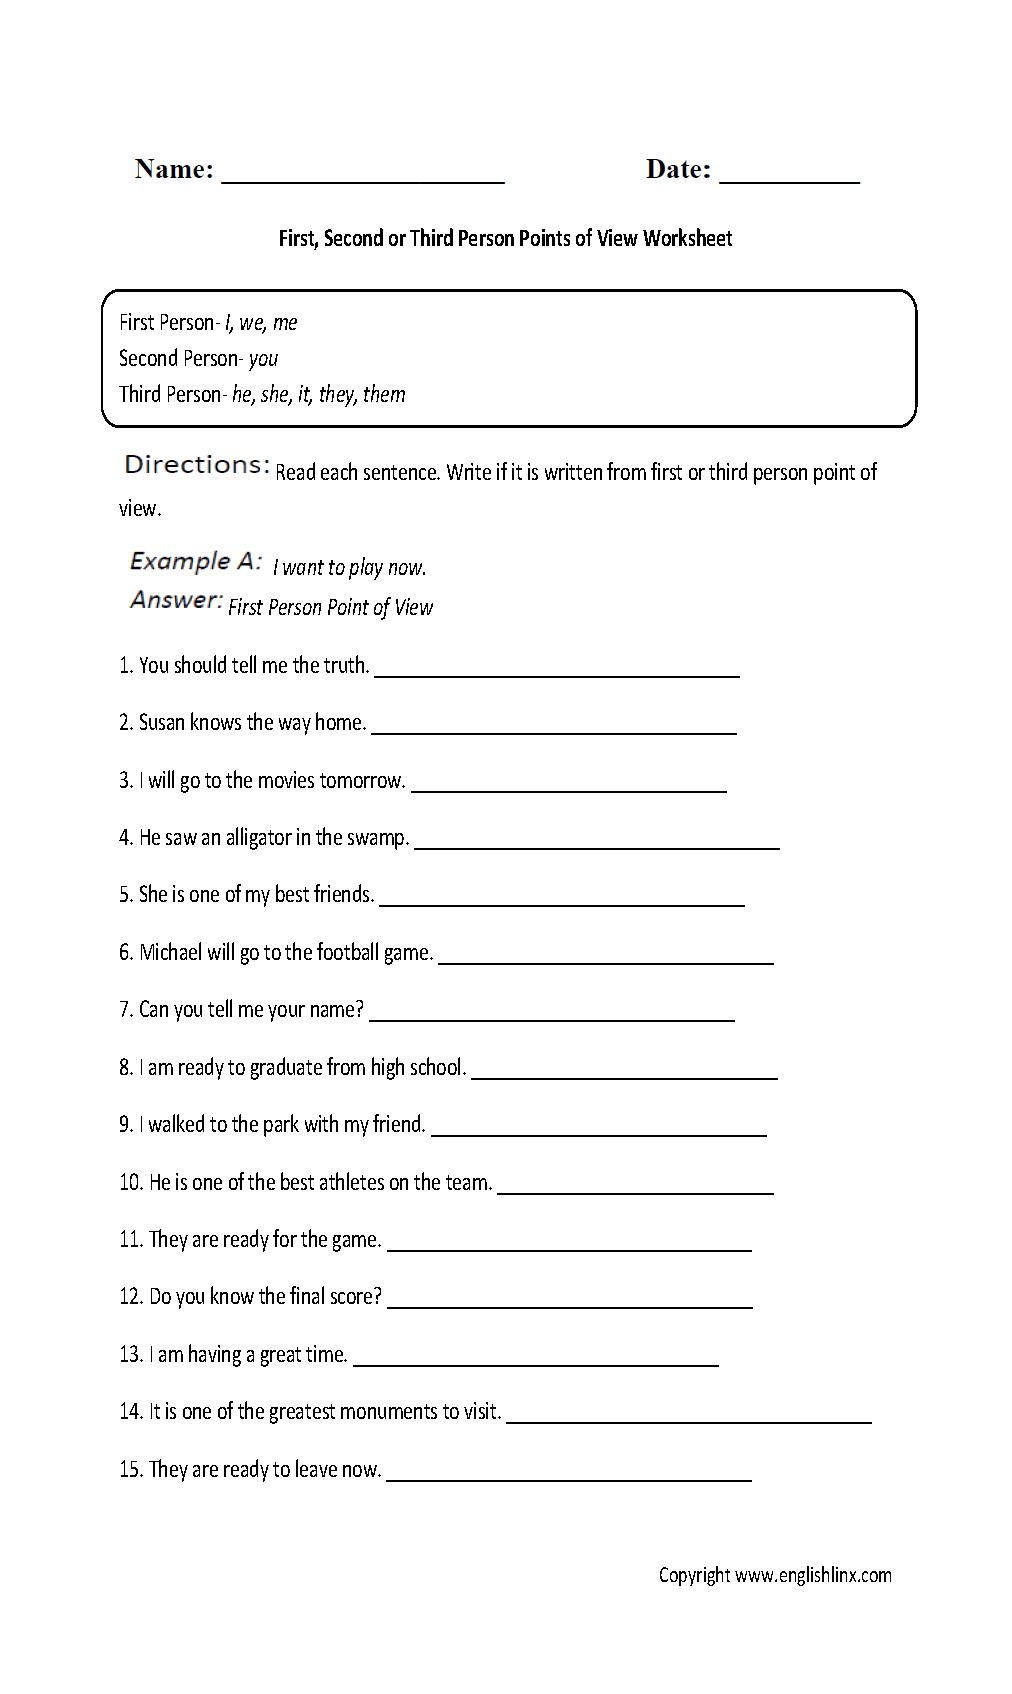 Weirdmailus  Prepossessing Englishlinxcom  Point Of View Worksheets With Lovely Point Of View Worksheet With Adorable Printable Winter Worksheets Also Literacy Worksheet In Addition Onomatopoeia Worksheets Ks And Adjectives Worksheet Grade  As Well As Synonym Worksheet Rd Grade Additionally Kindergarten Nutrition Worksheets From Englishlinxcom With Weirdmailus  Lovely Englishlinxcom  Point Of View Worksheets With Adorable Point Of View Worksheet And Prepossessing Printable Winter Worksheets Also Literacy Worksheet In Addition Onomatopoeia Worksheets Ks From Englishlinxcom